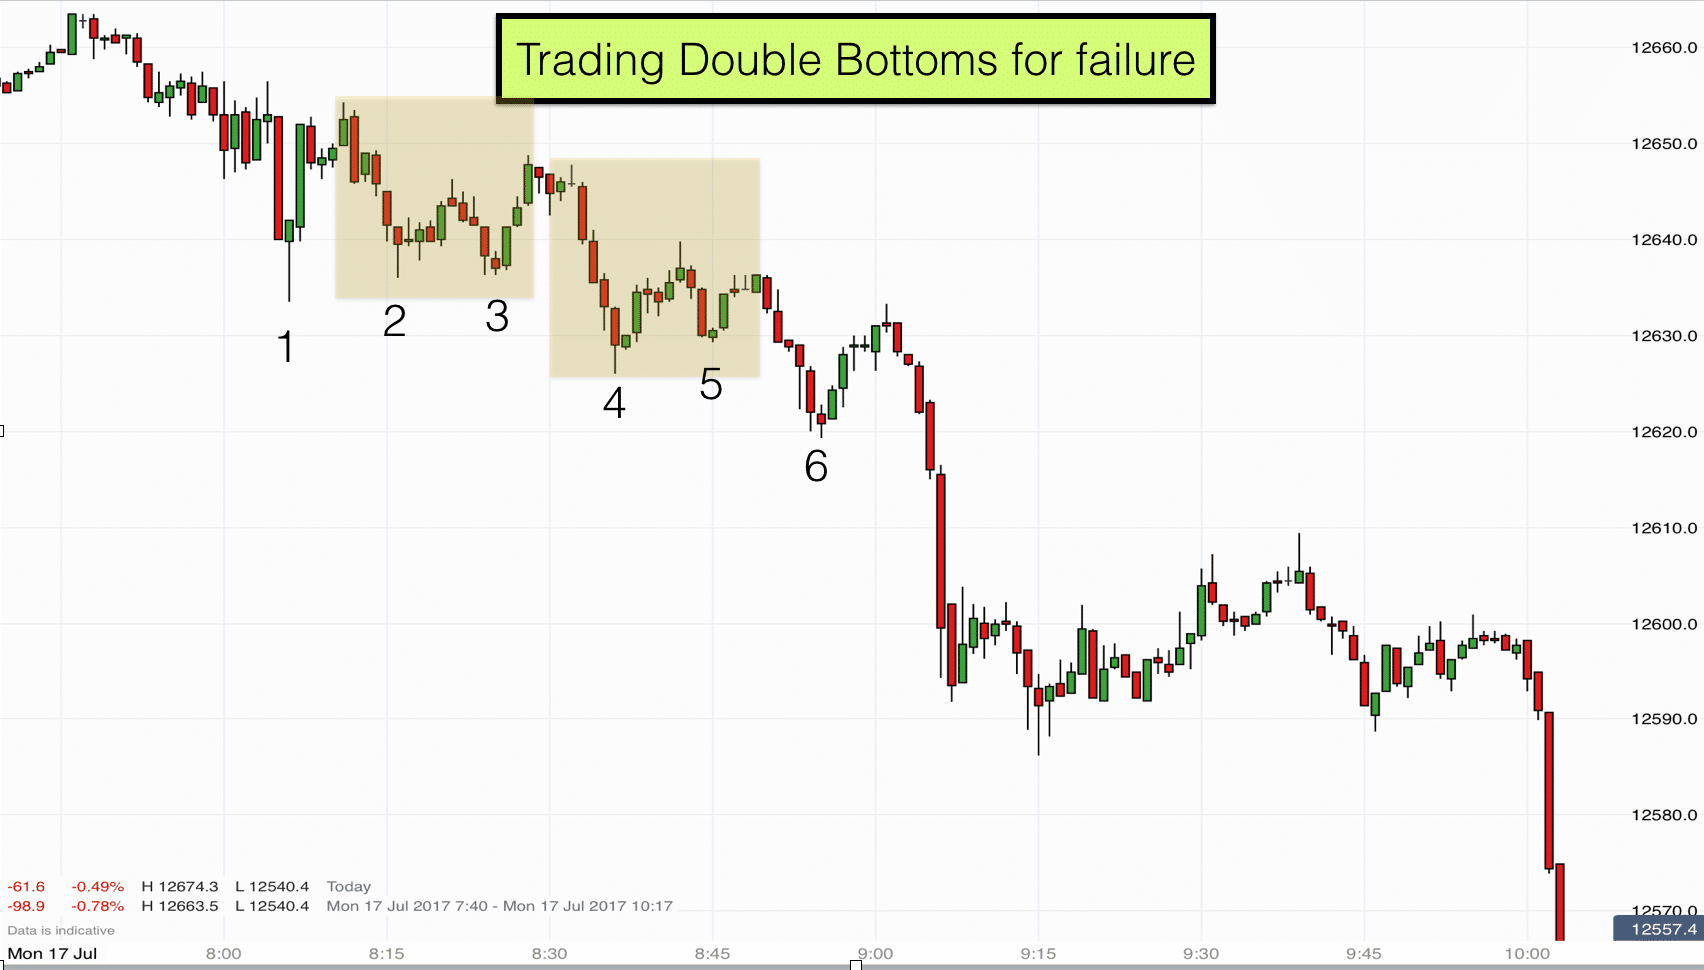 Trading double bottoms for failure